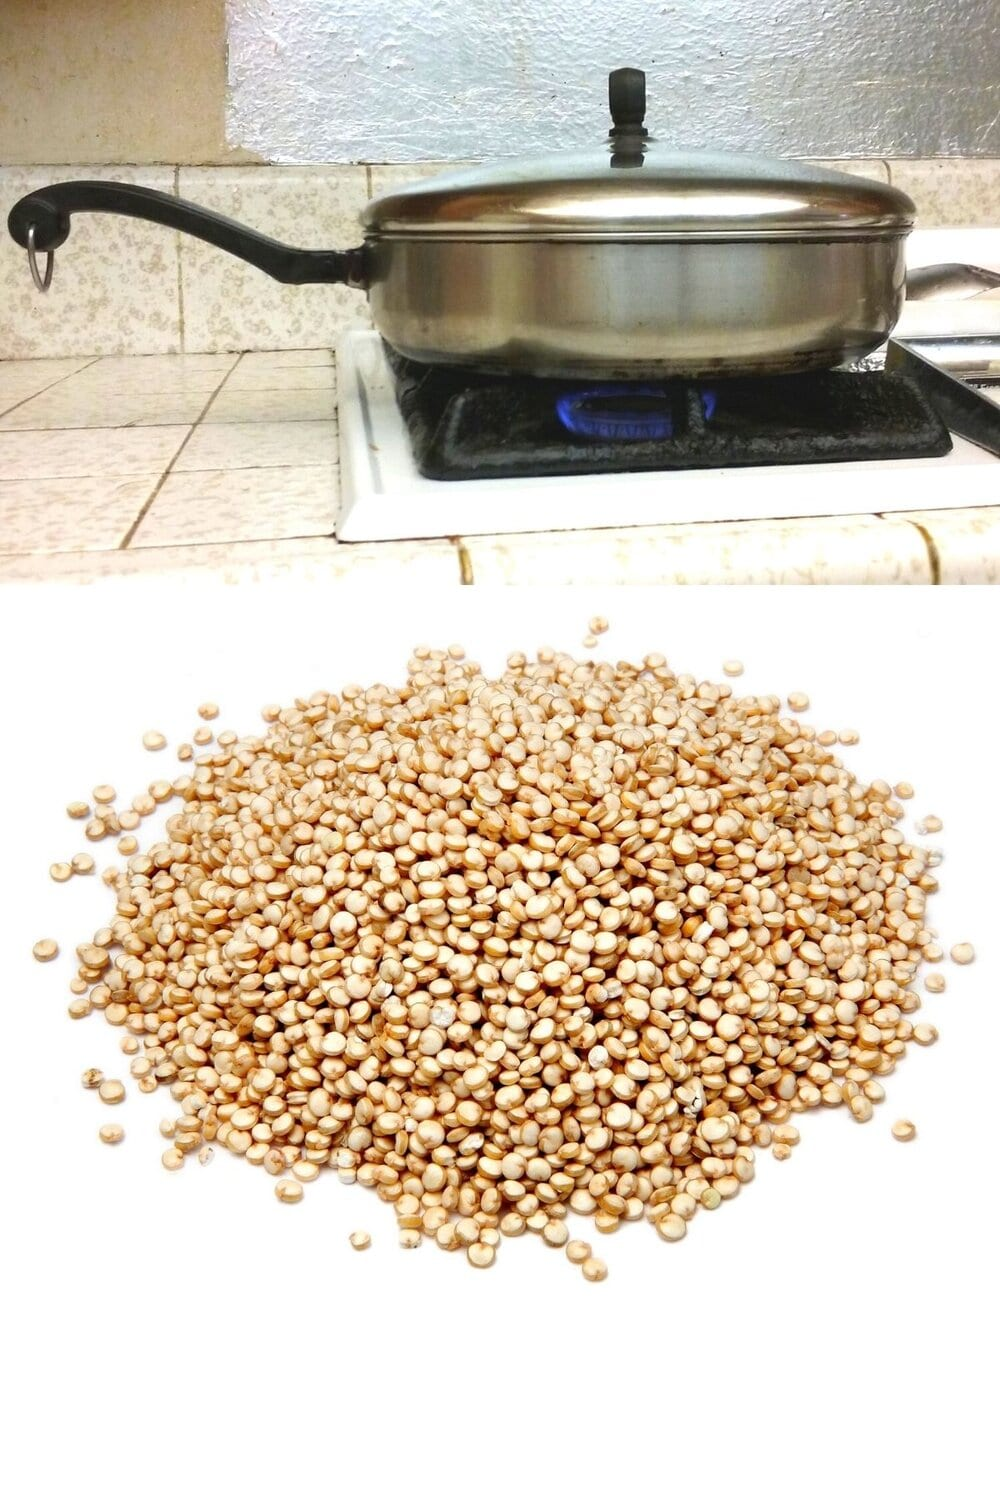 Quinoa on the counter in front of a pan